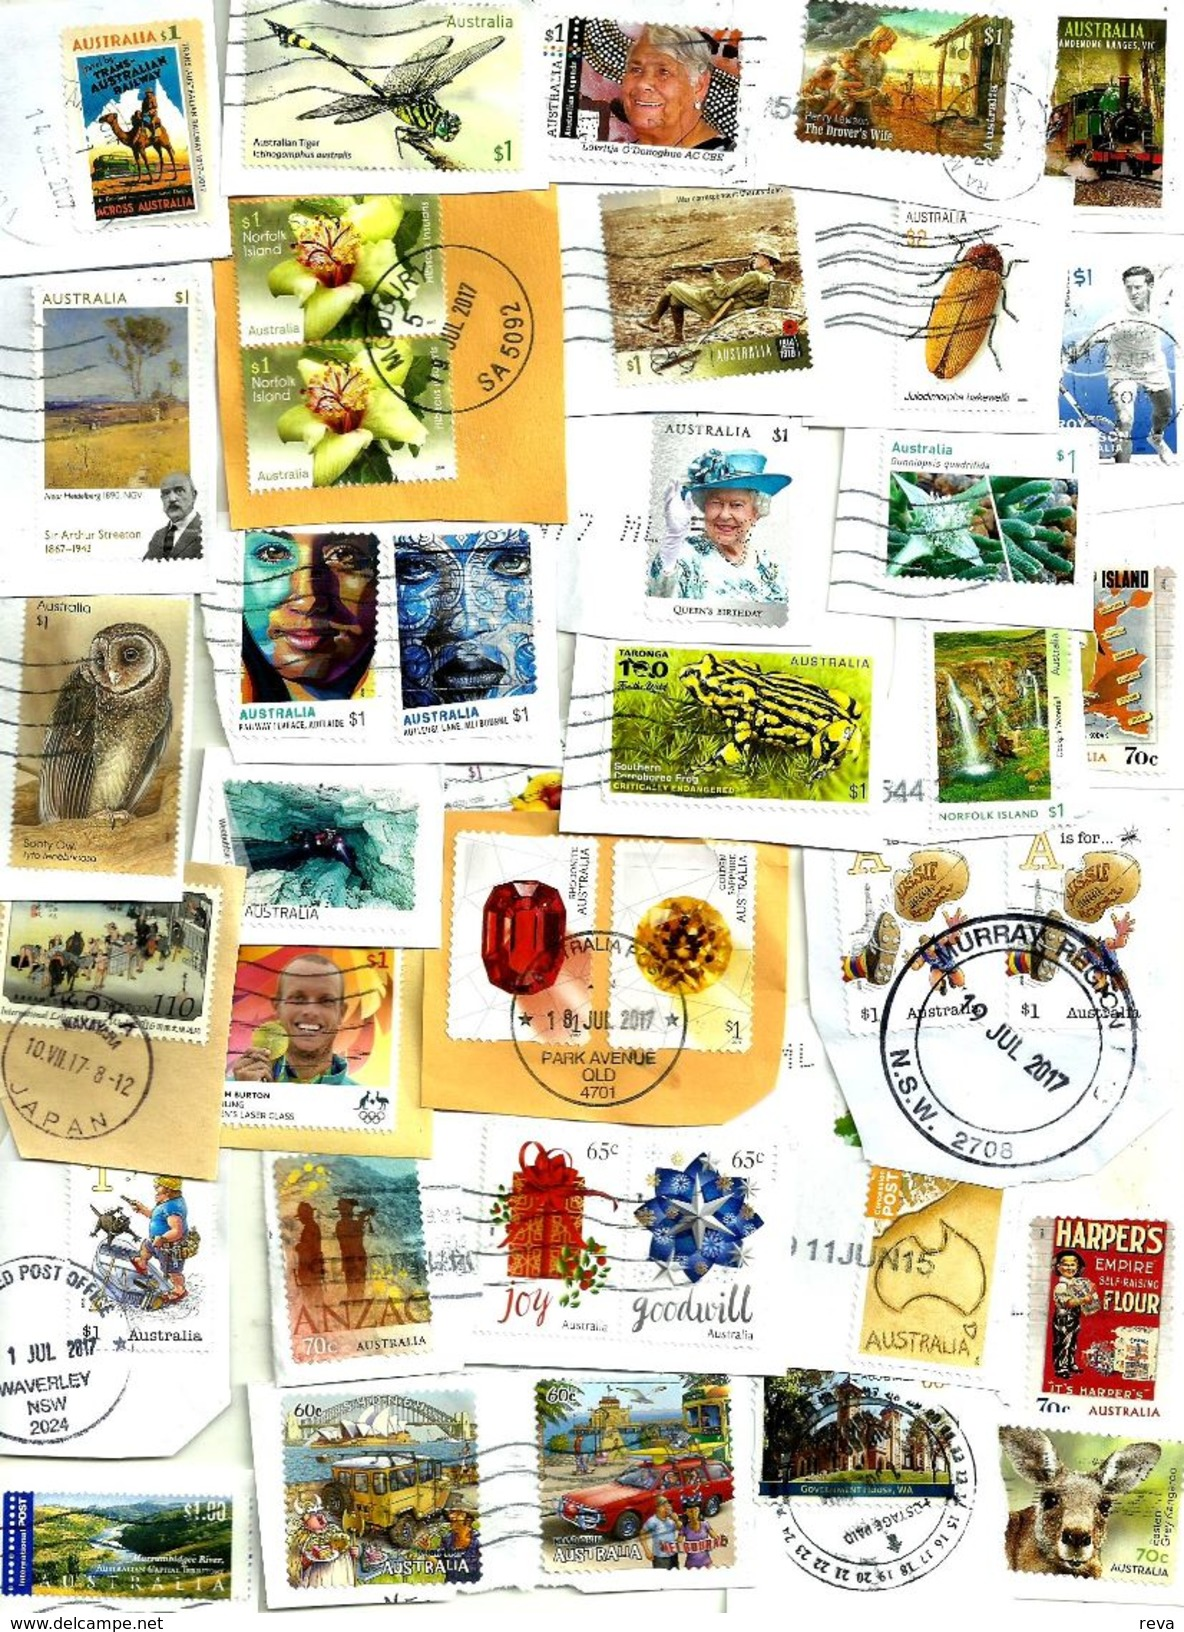 """AUSTRALIA LOT7 MIXTURE OF50+USED STAMPS SOME 2014/17 INC.NEW""""DRAGONFLY""""TRAIN""""$1,NI""""FLOWER""""ETC.READ DESCRIPTION!! - Lots & Kiloware (mixtures) - Max. 999 Stamps"""